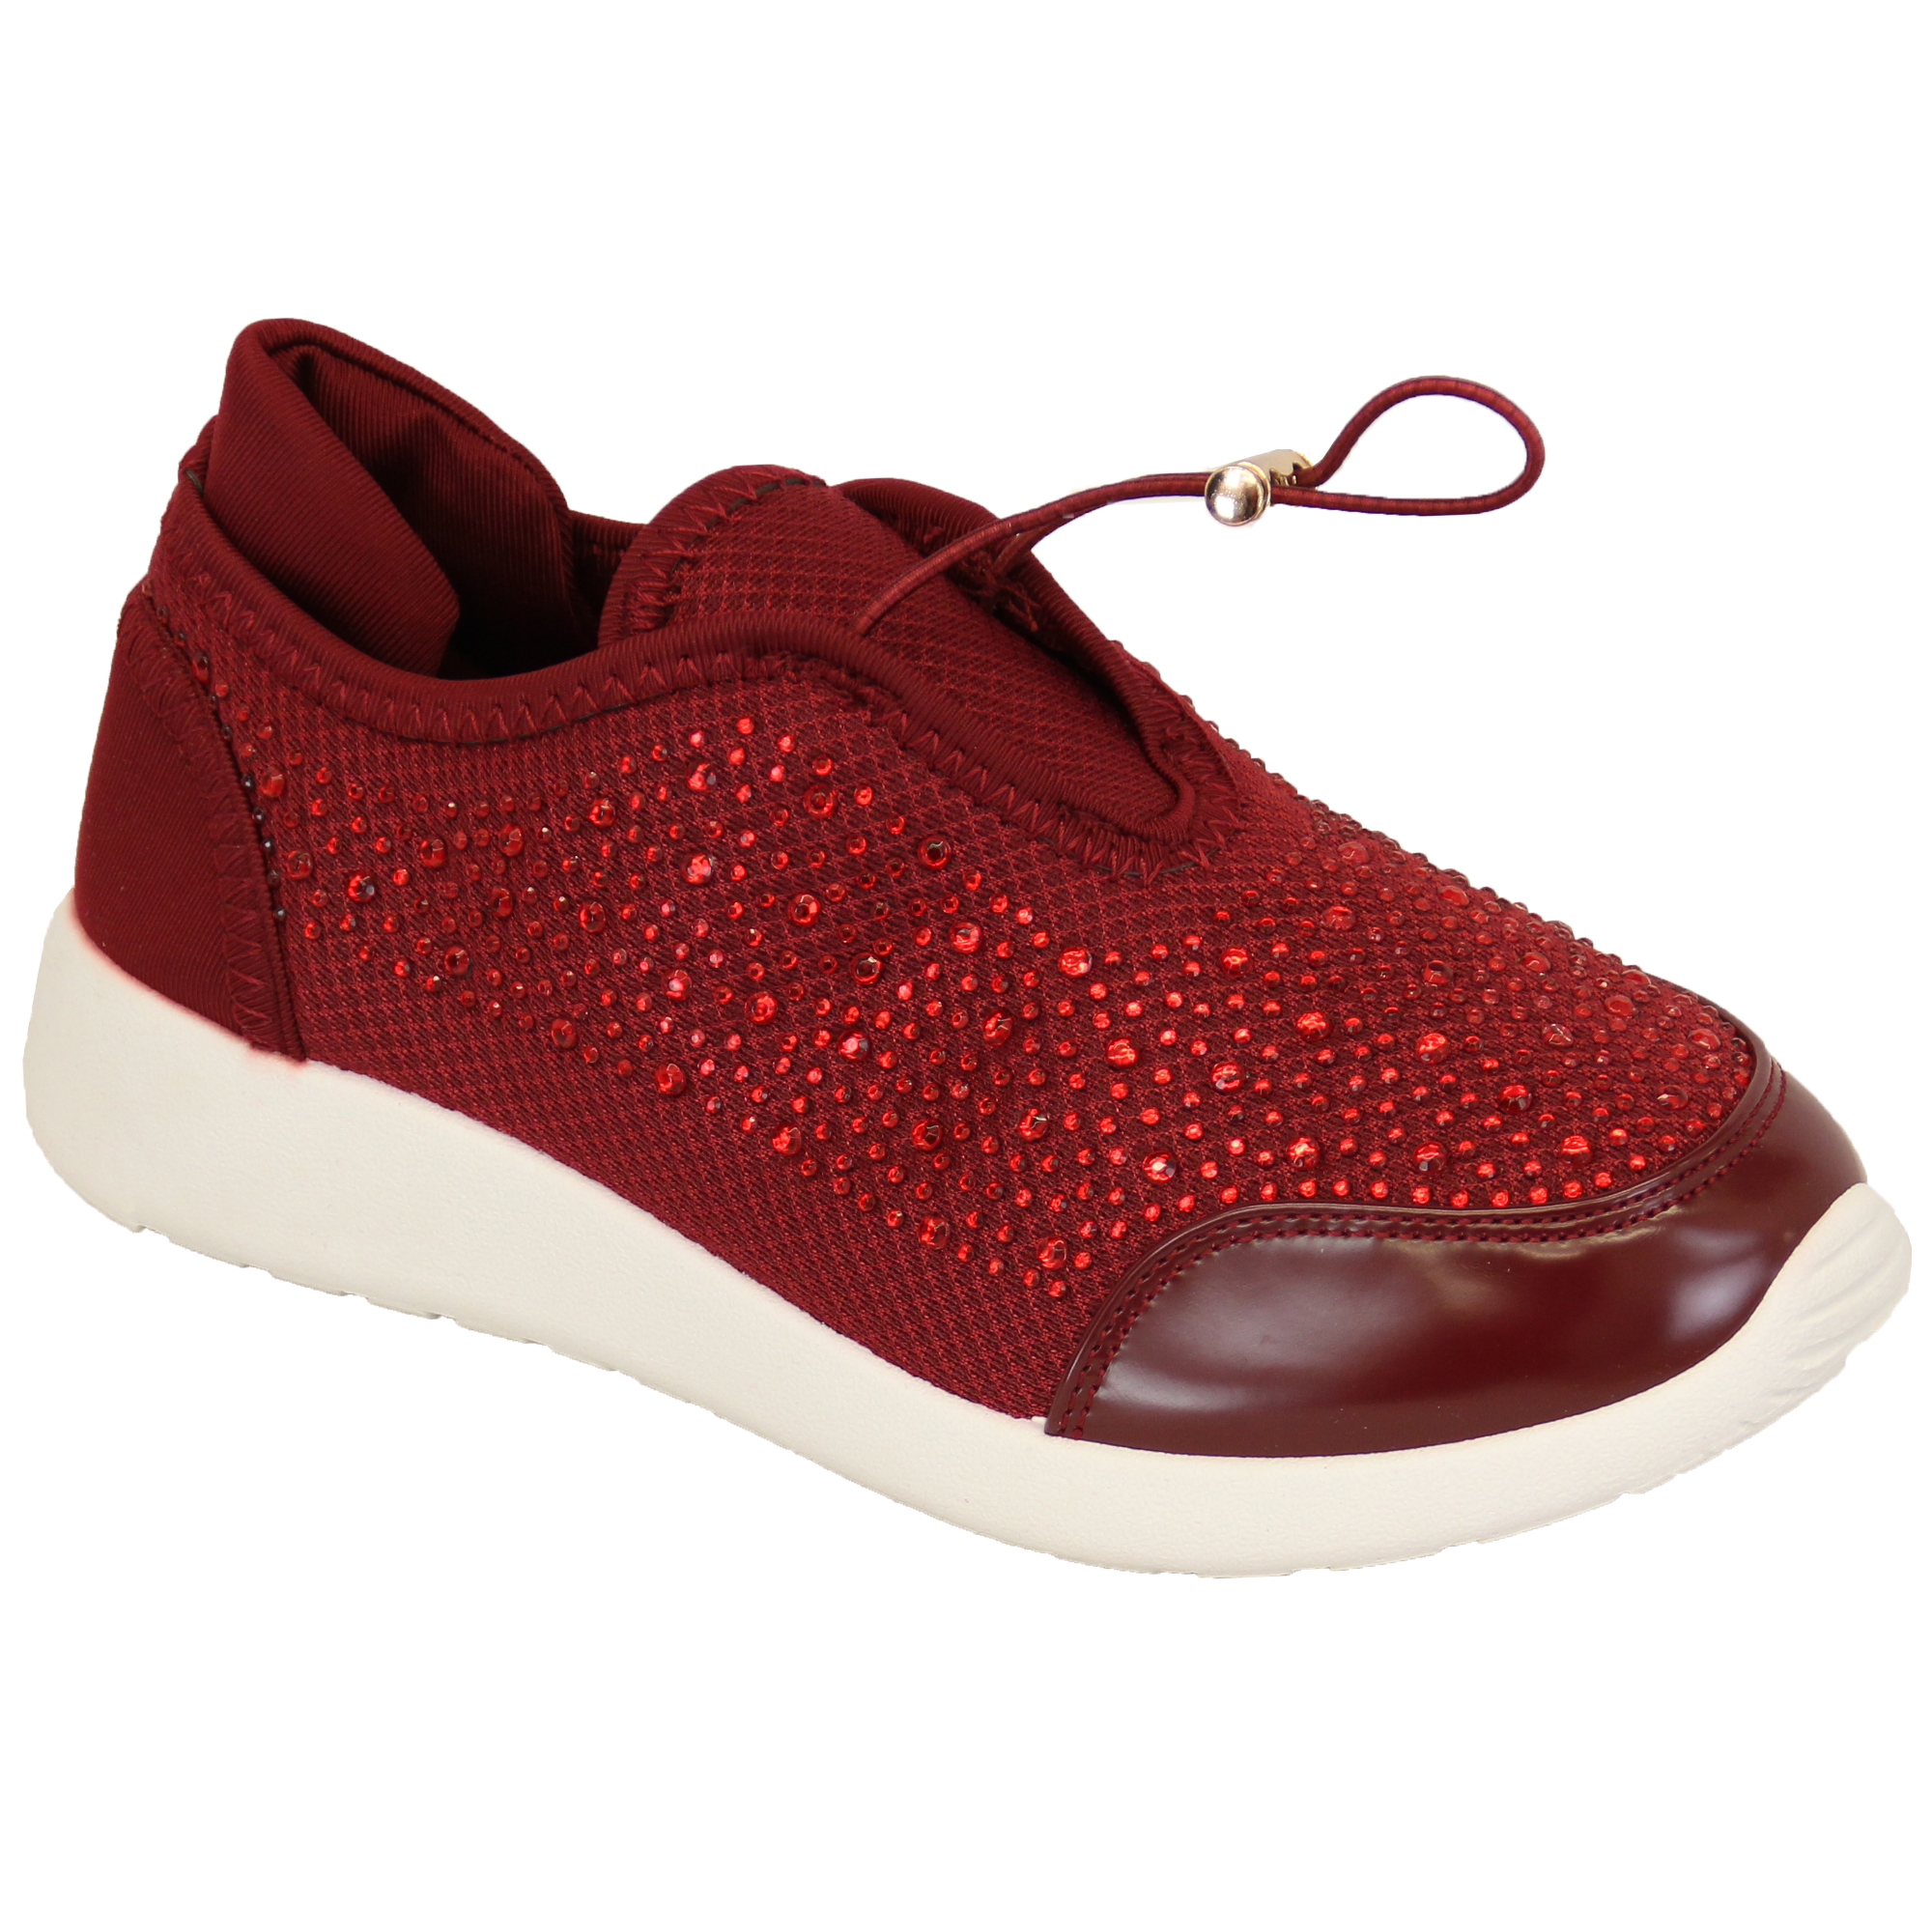 Find mesh shoes from a vast selection of